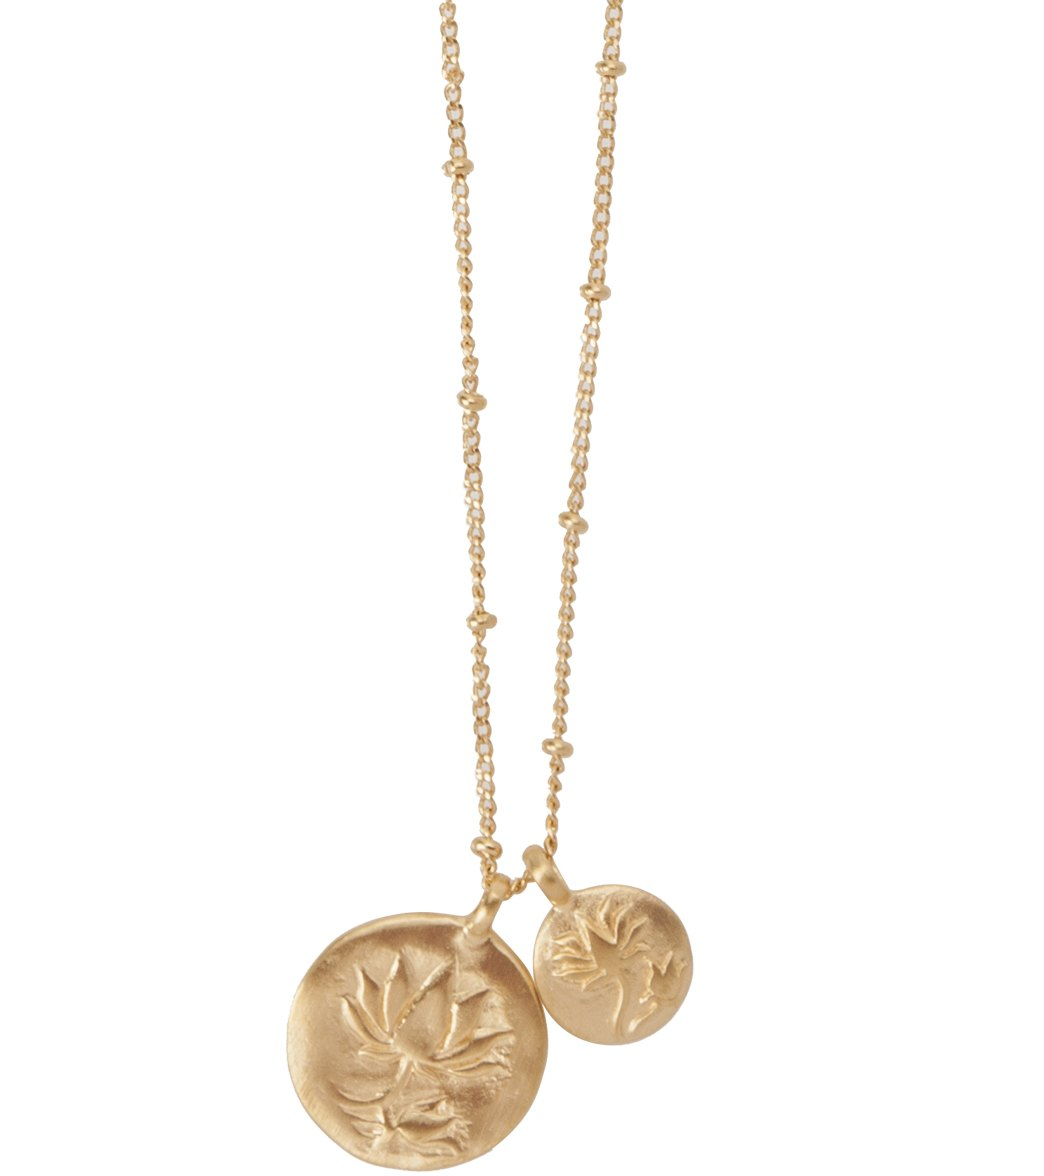 8069c29cf81ec7 Satya Jewelry Gold Lotus Necklace at YogaOutlet.com